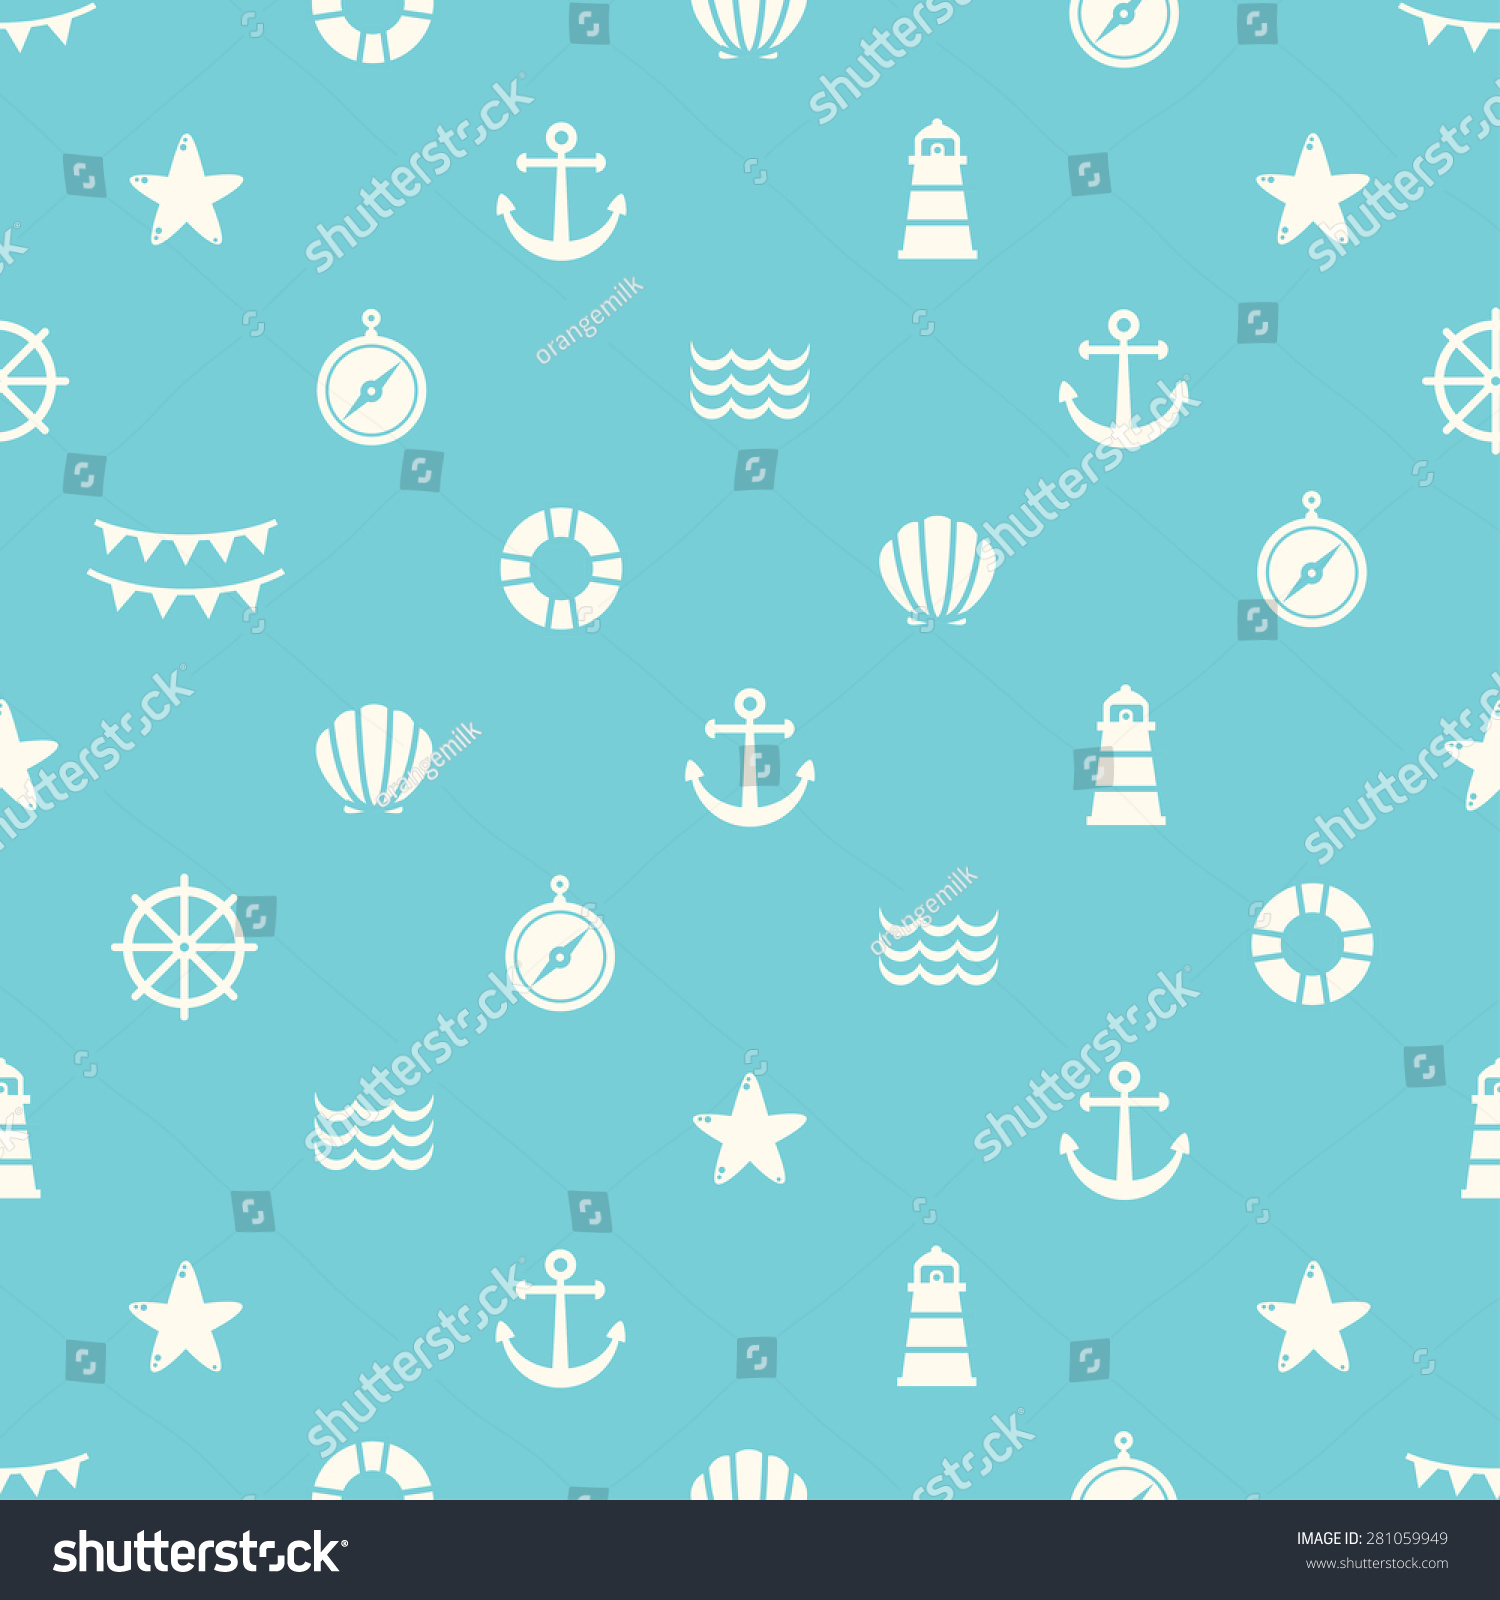 Simple Blue Vector Seamless Pattern Flat 281059949